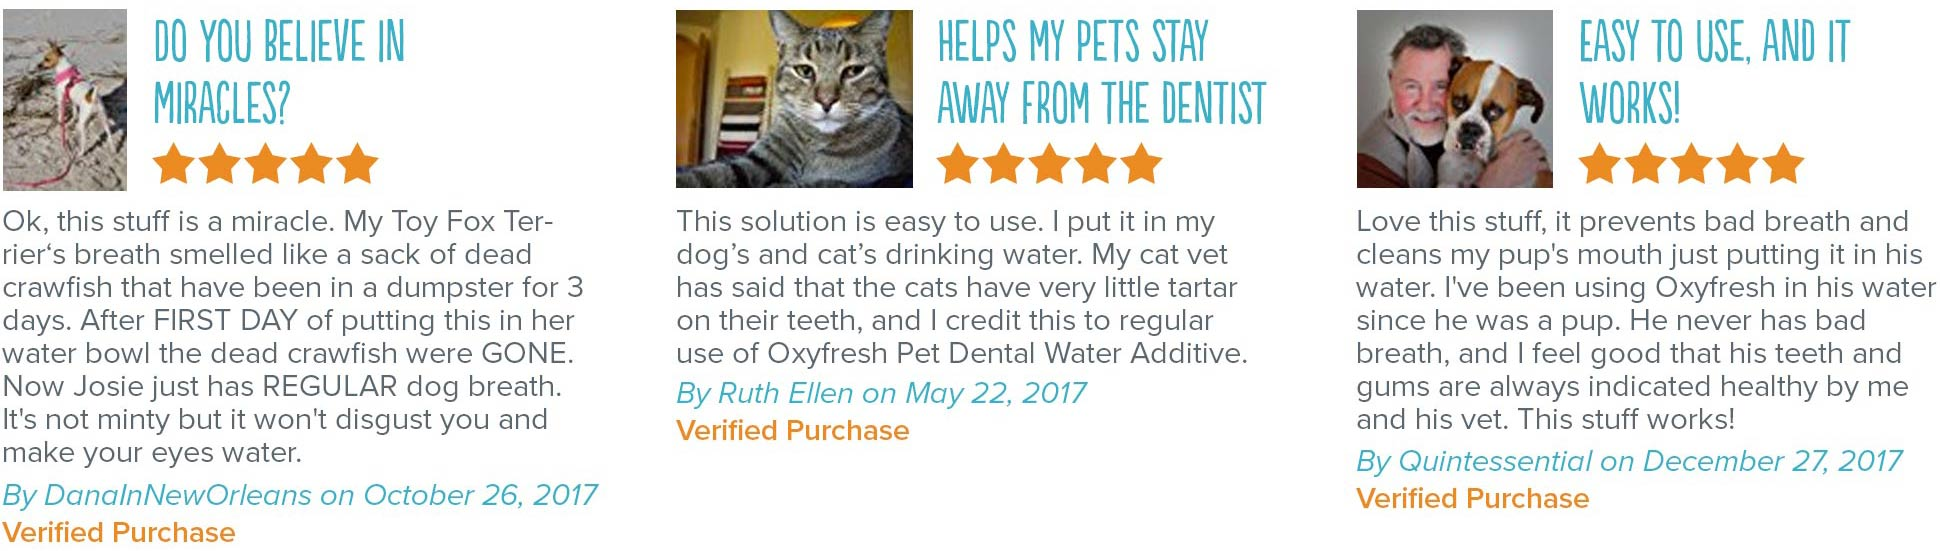 Oxyfresh - Eliminate Pet Breath - Pet Water Additive Reviews